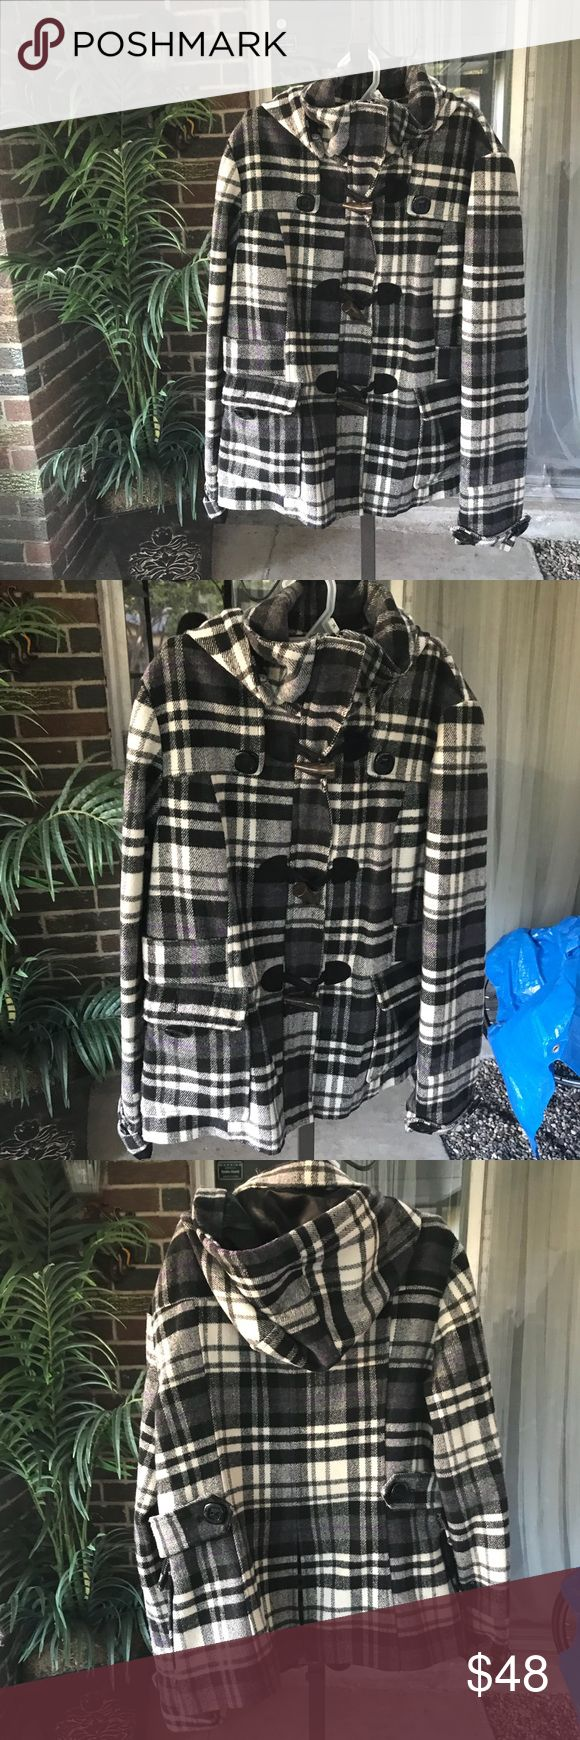 Black and white plaid print winter coat/jacket Winter is coming, and this is the perfect coat to help you prepare. It's equipped to handle cold weather but isn't bulky and will keep you warm and stylish this winter season. Jackets & Coats